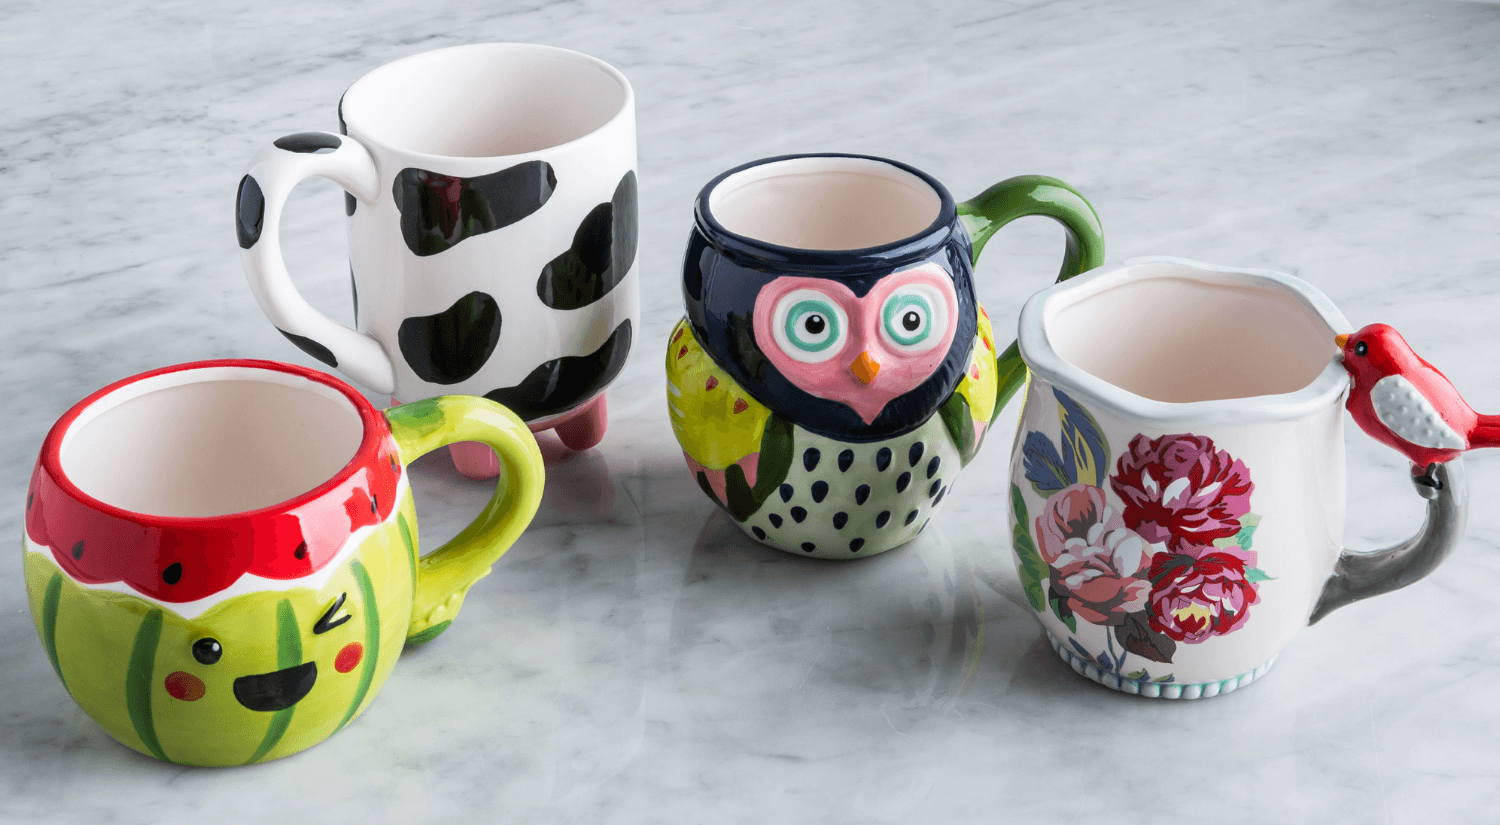 4 unique and colourful mugs with floral, cow, owl and watermelon designs